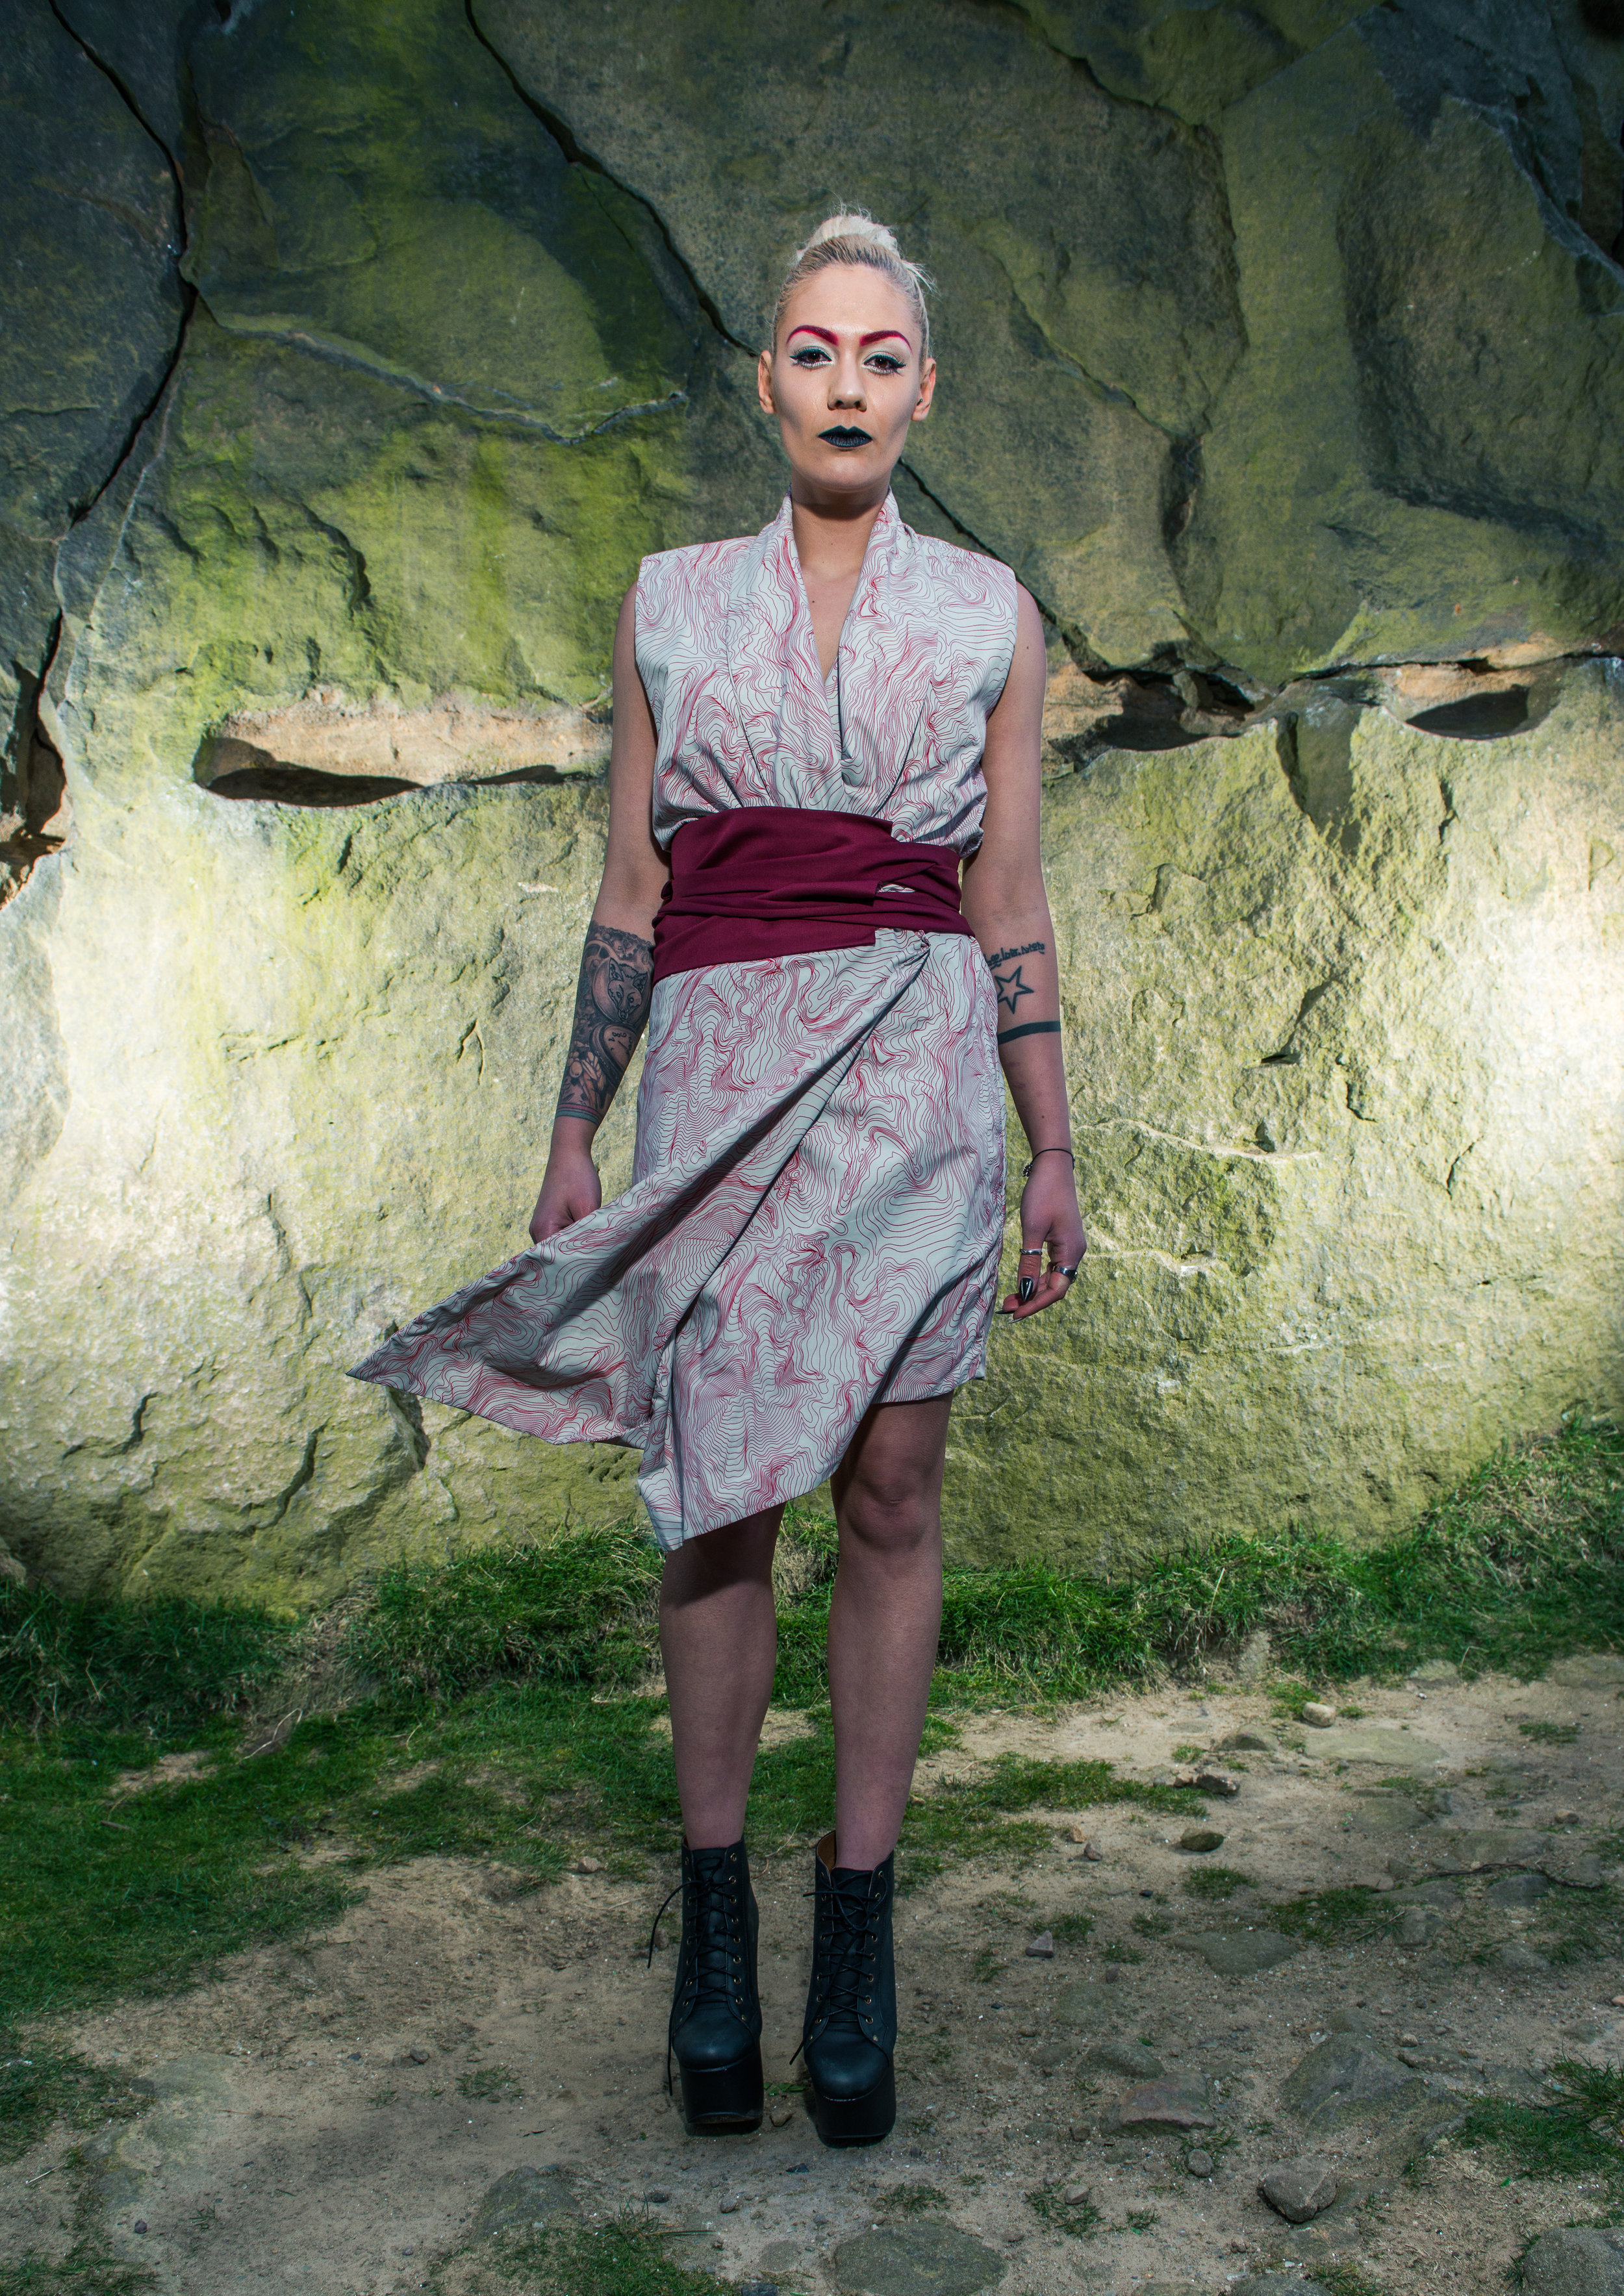 zaramia-ava-zaramiaava-leeds-fashion-designer-ethical-sustainable-tailored-minimalist-red-black-white-print-fitted-point skirt-emi-versatile-drape-cowl-styling-womenswear-models-photoshoot-location-29